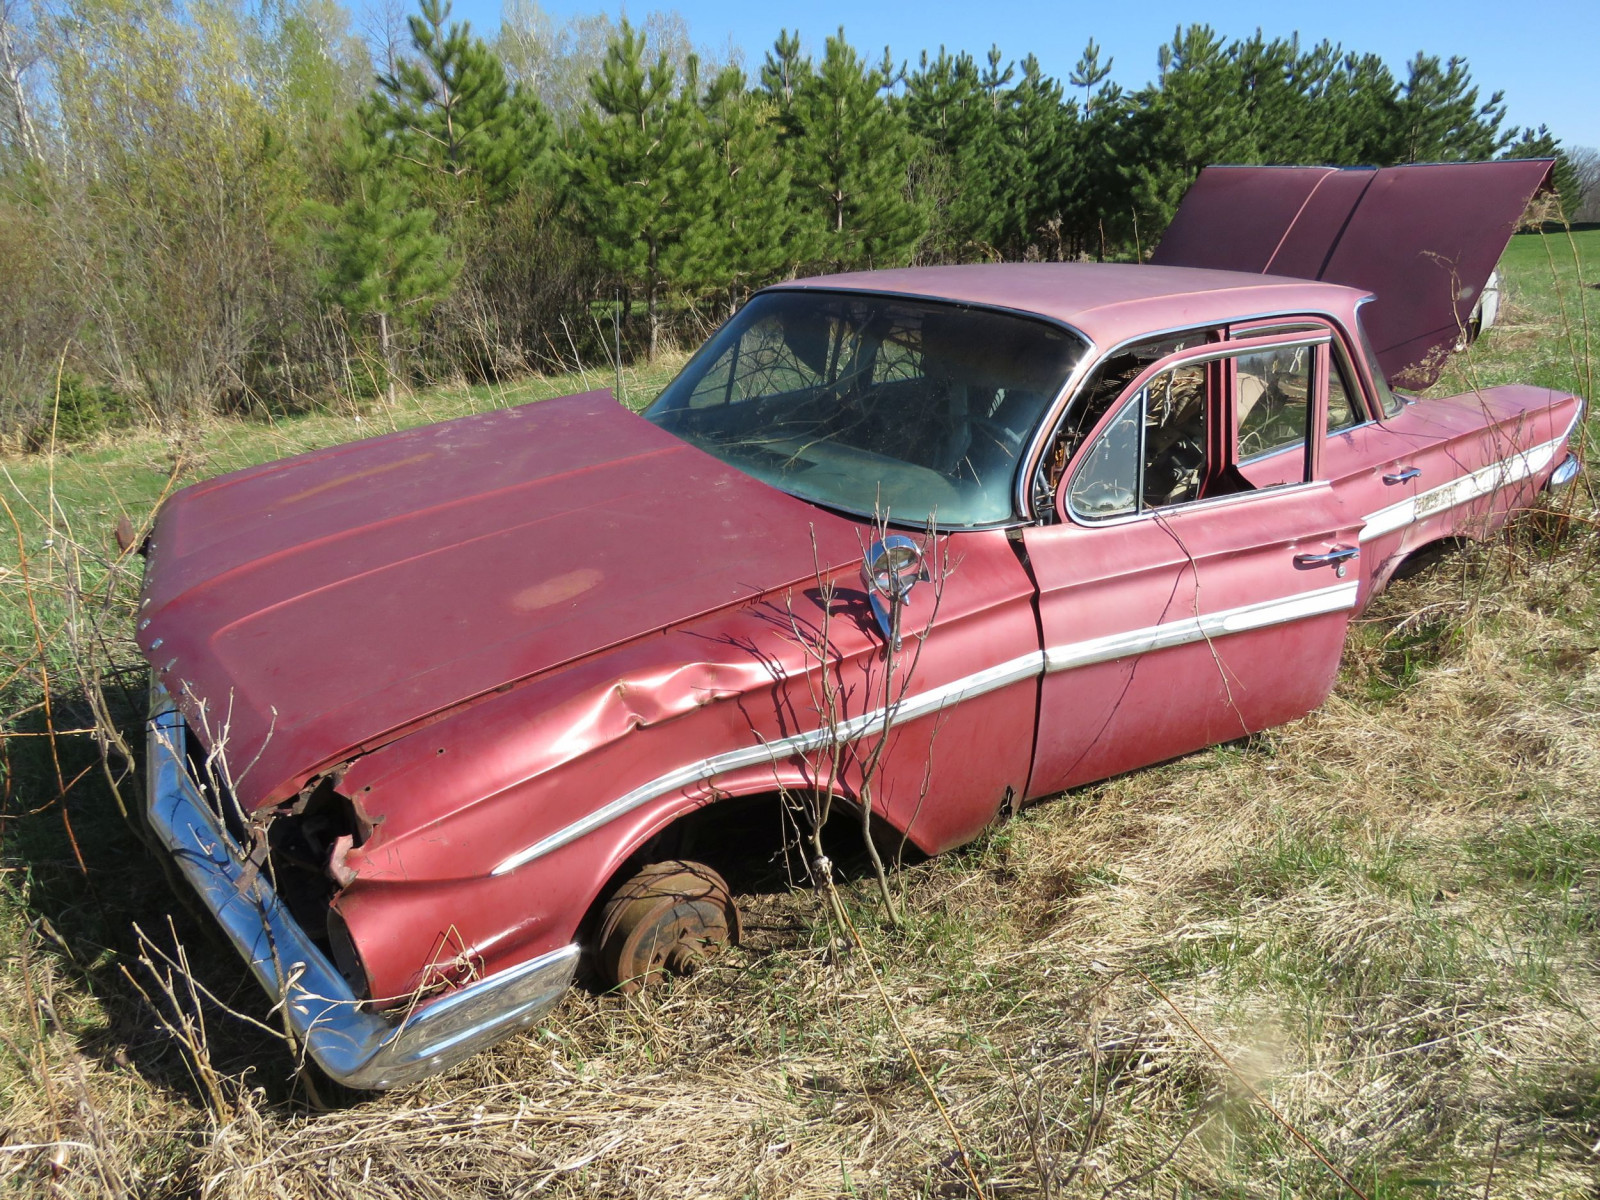 1961 Chevrolet 4dr Sedan parts only - Image 2